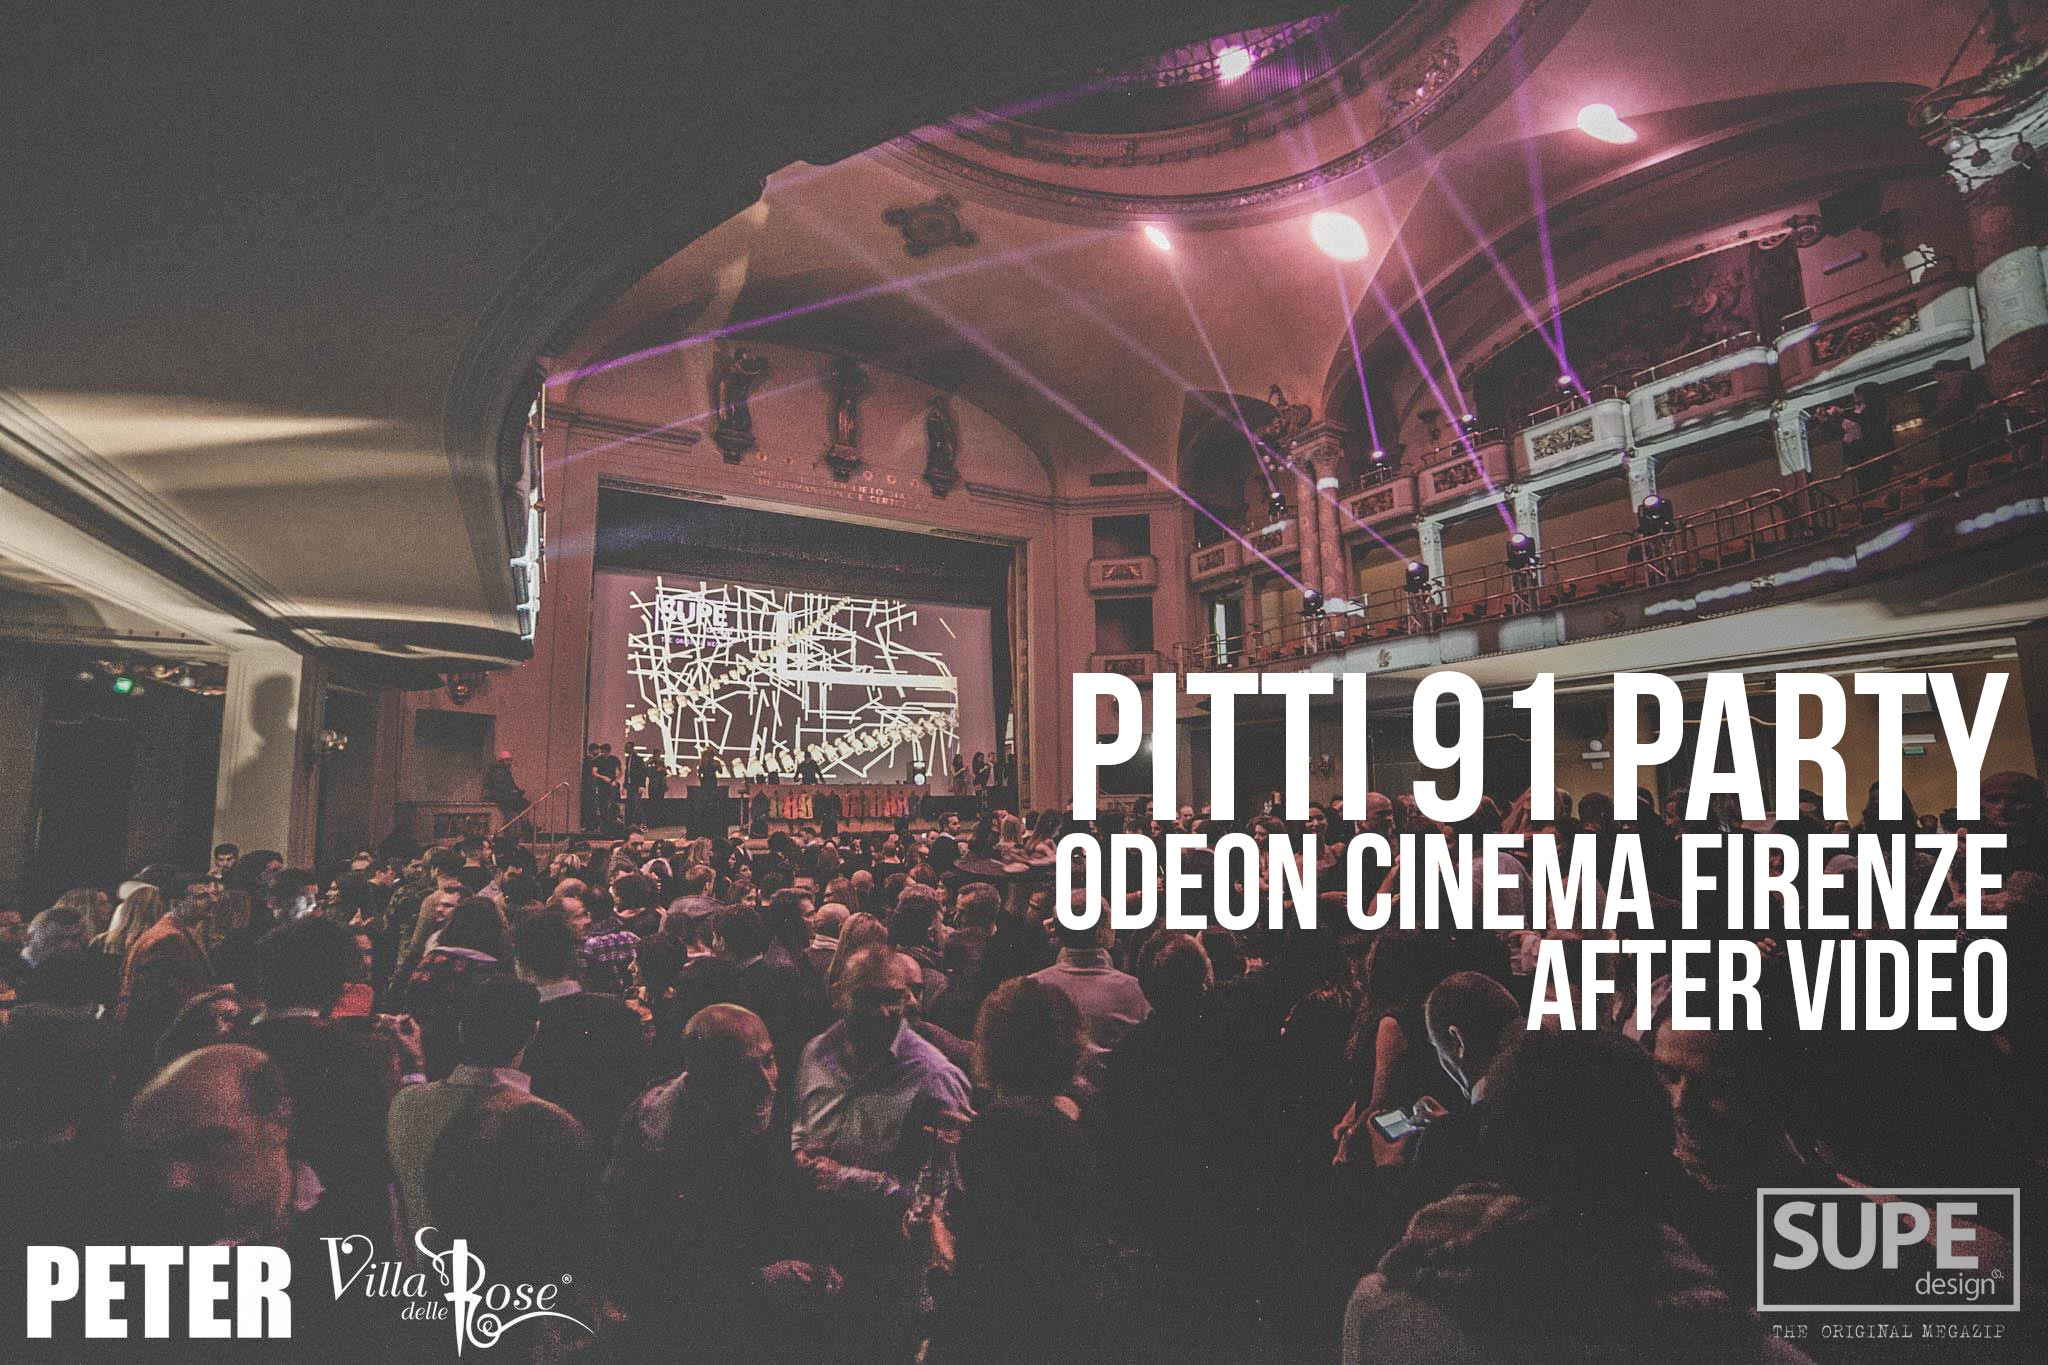 Supe'r Party Pitti Uomo 91 - After Video